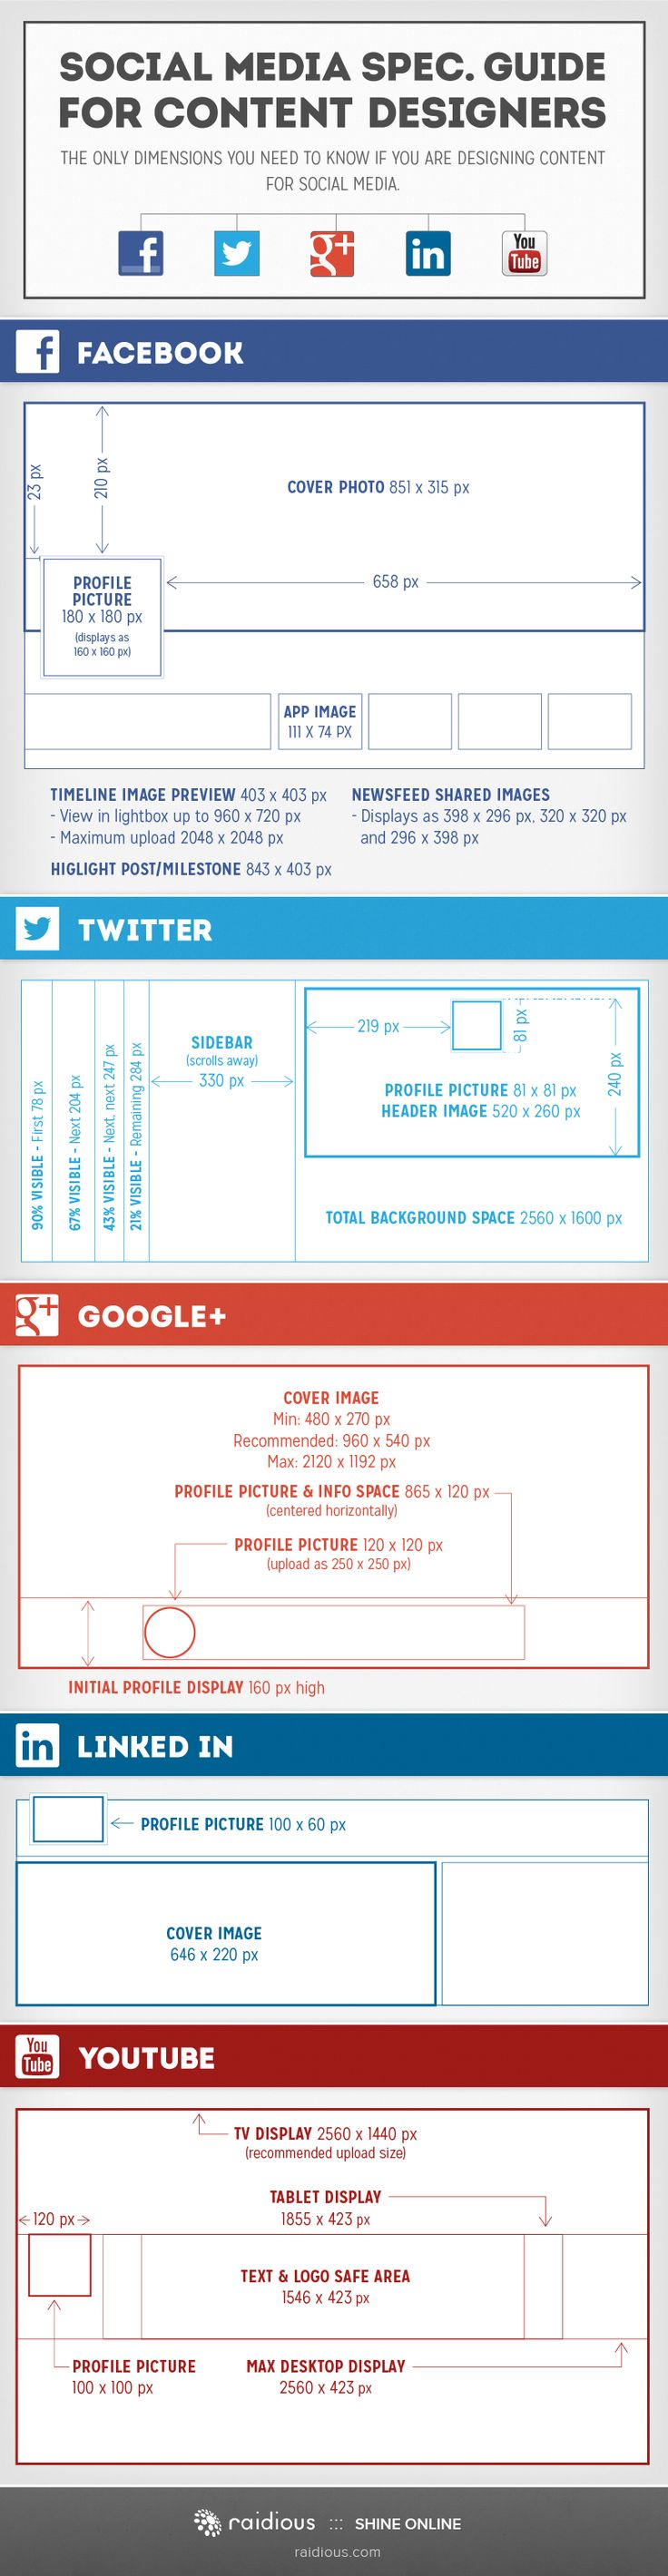 Specification Guide For Social Networking Sites [Infographic], dimensions and image size for facebook, twitter, pinterest, linkedin, google+...